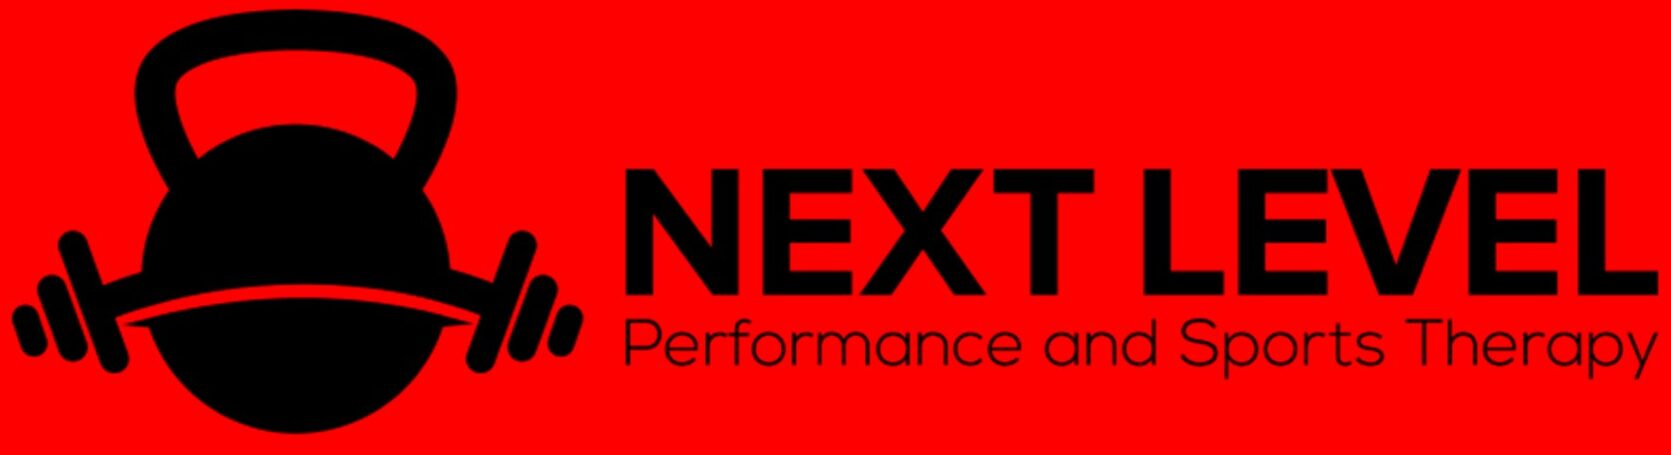 Next Level Performance and Sports Therapy